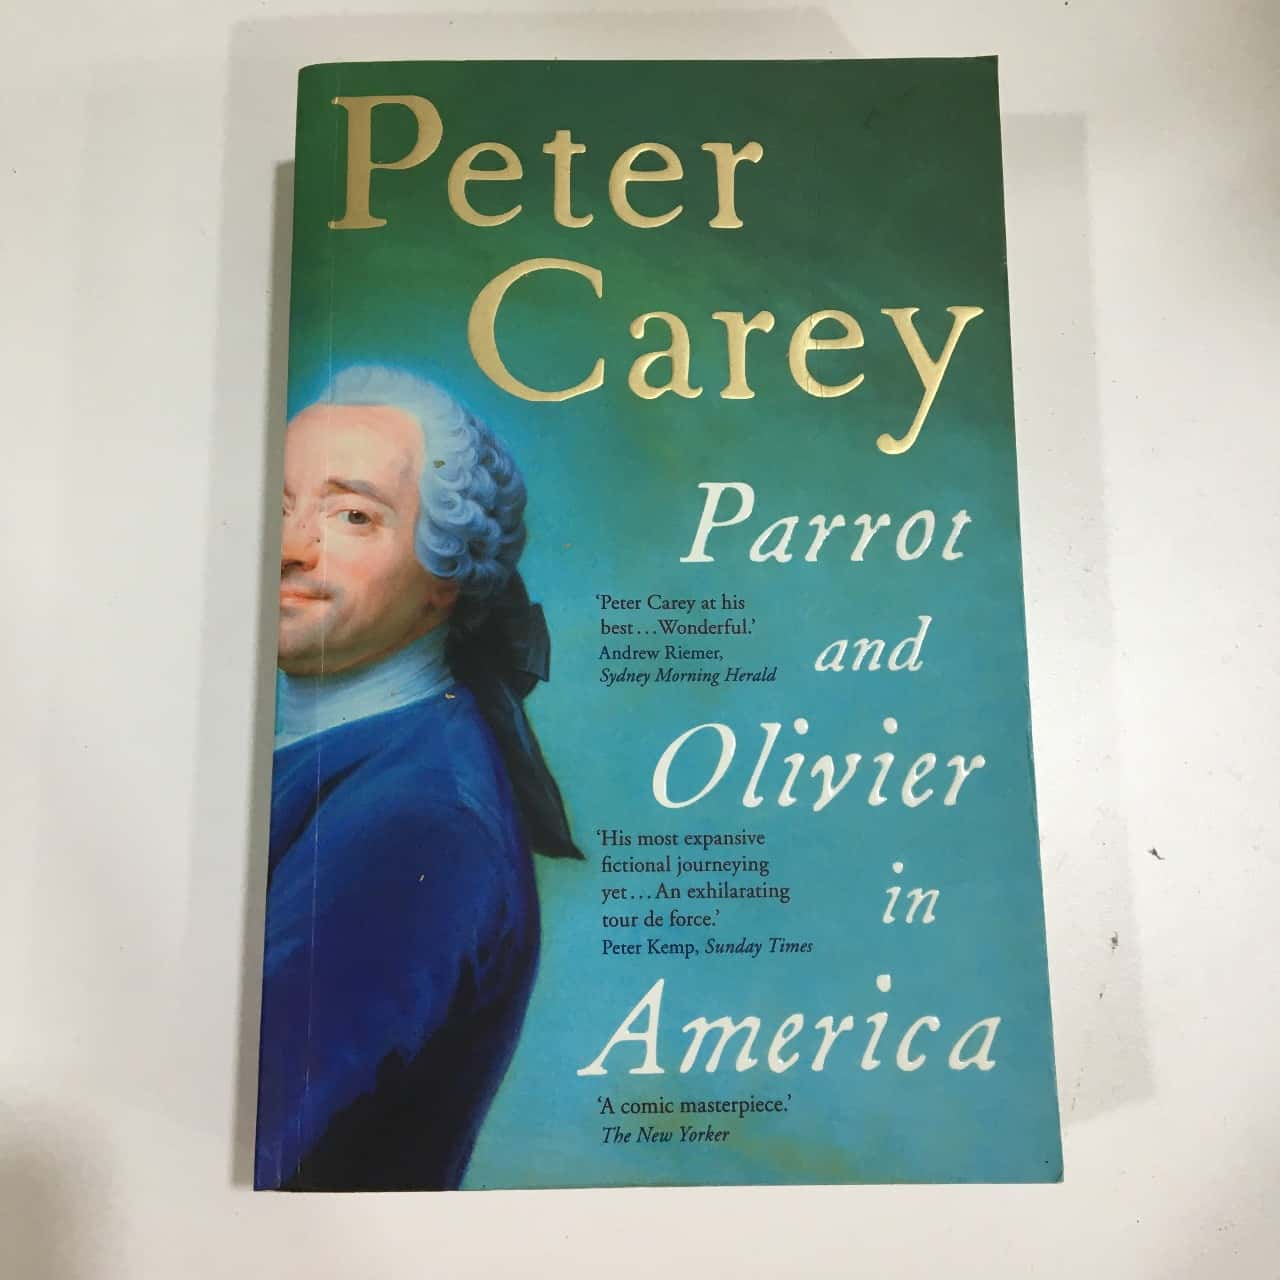 Parrot and Oliver in America by Peter Carey